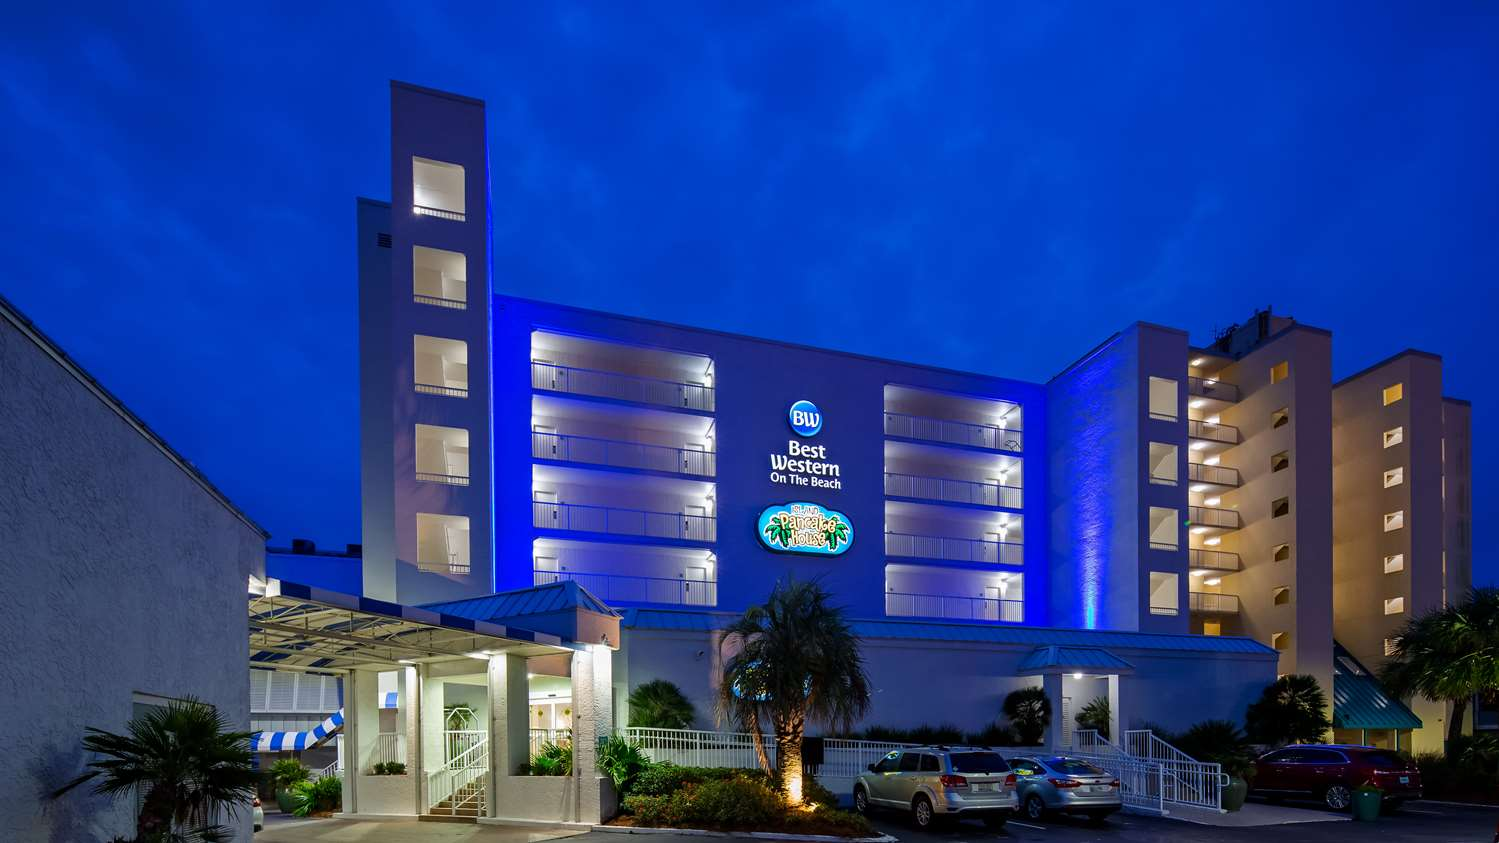 Exterior view - Best Western on the Beach Hotel Gulf Shores